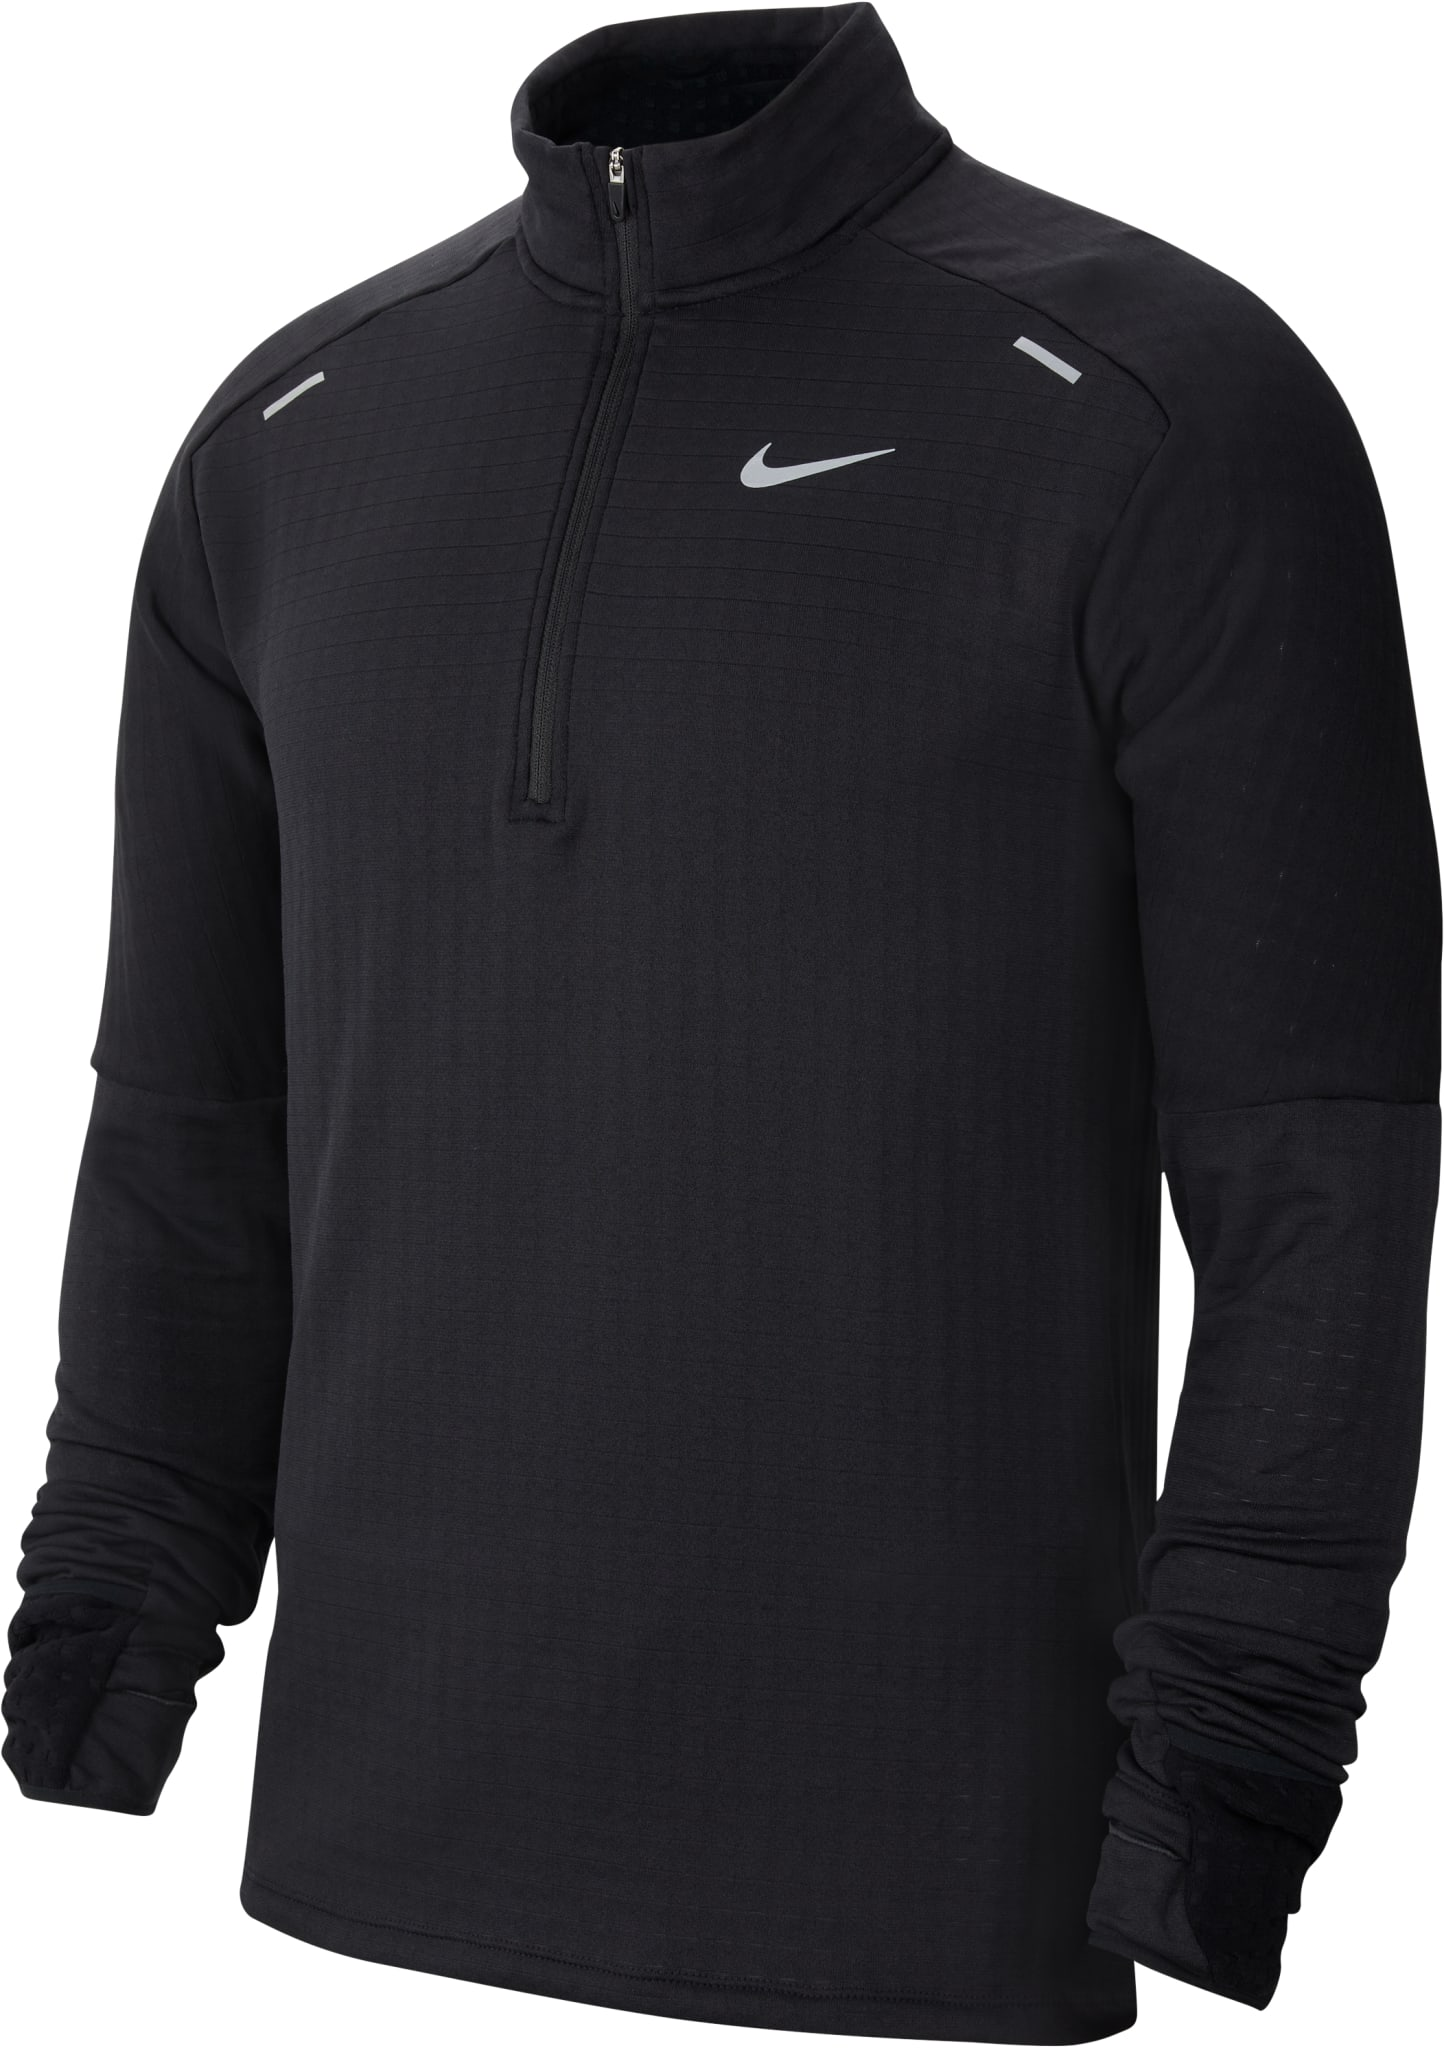 Nike Sphere Element Men's Running Top 1/2-Zip